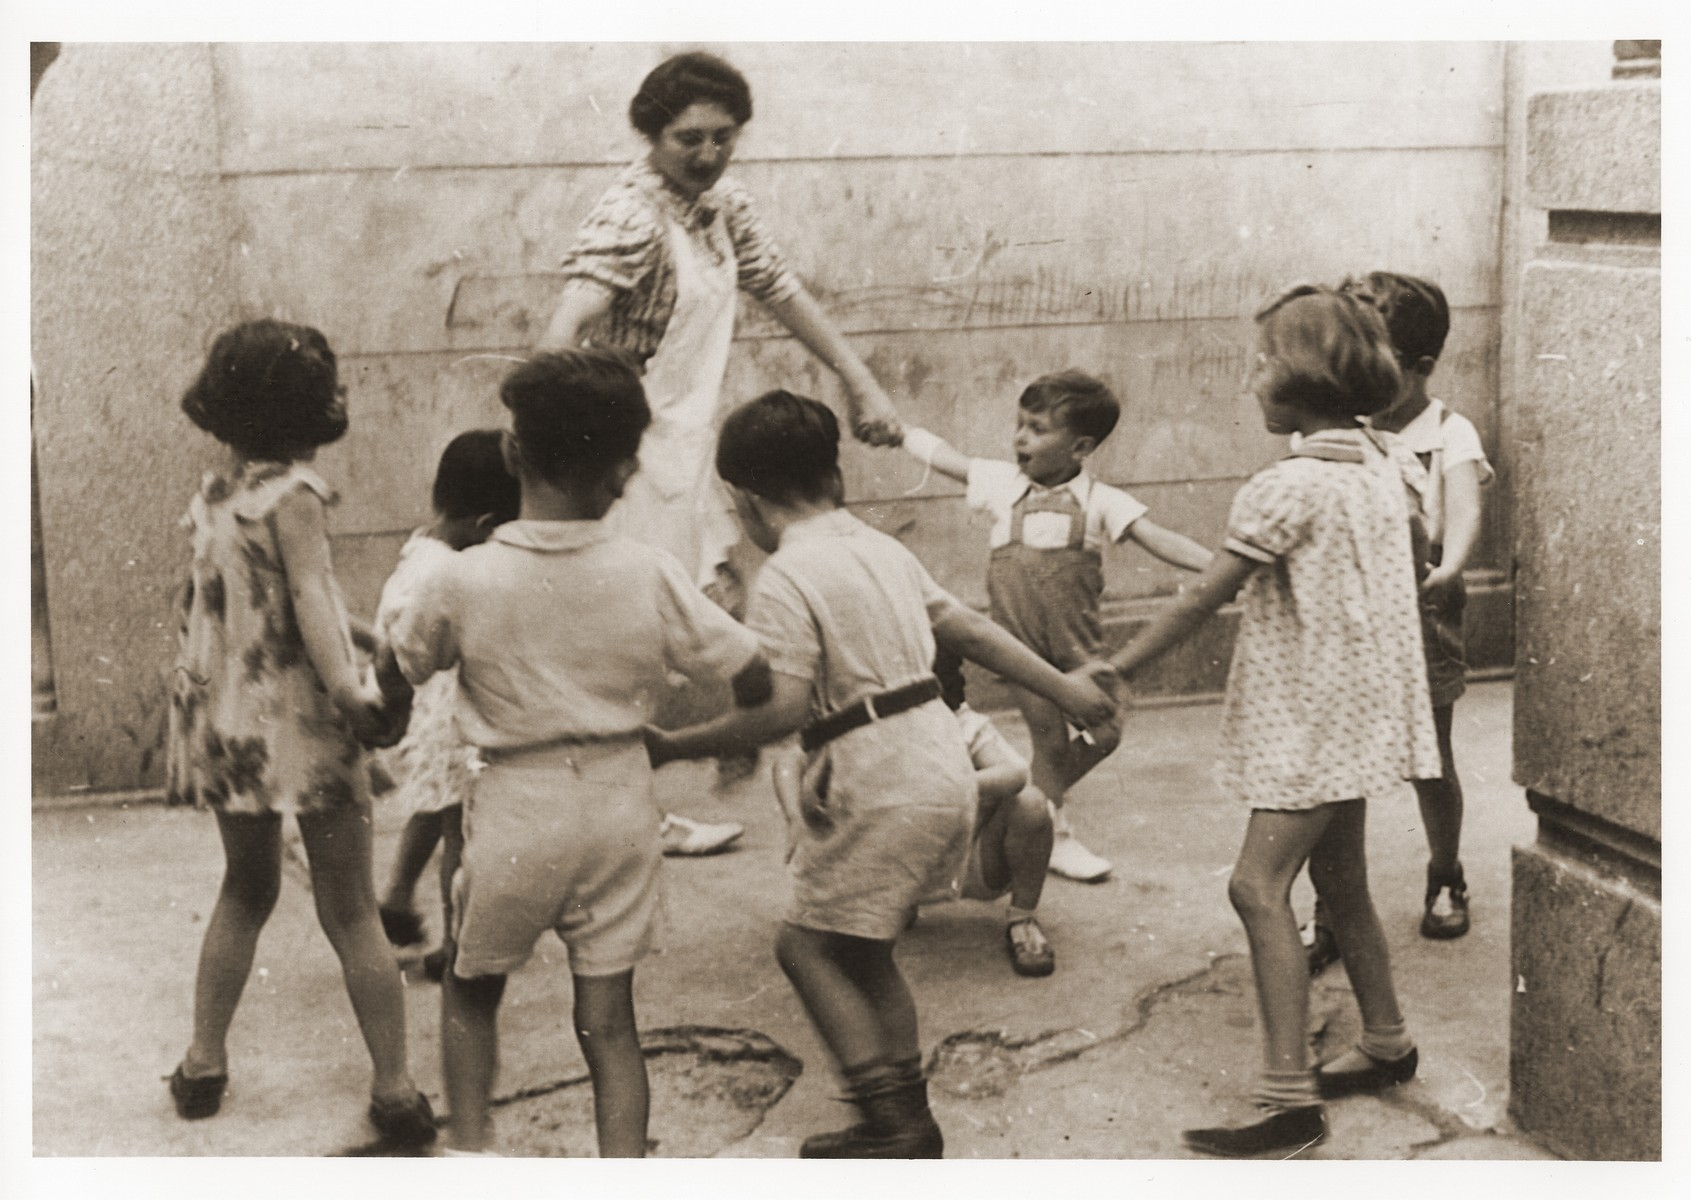 A teacher leads a group of young children in a circle dance at the Shanghai Jewish Youth Association School.  Among those pictured is Wolfgang Gotthelf (far right, partially hidden from view).  His aunt is the teacher.